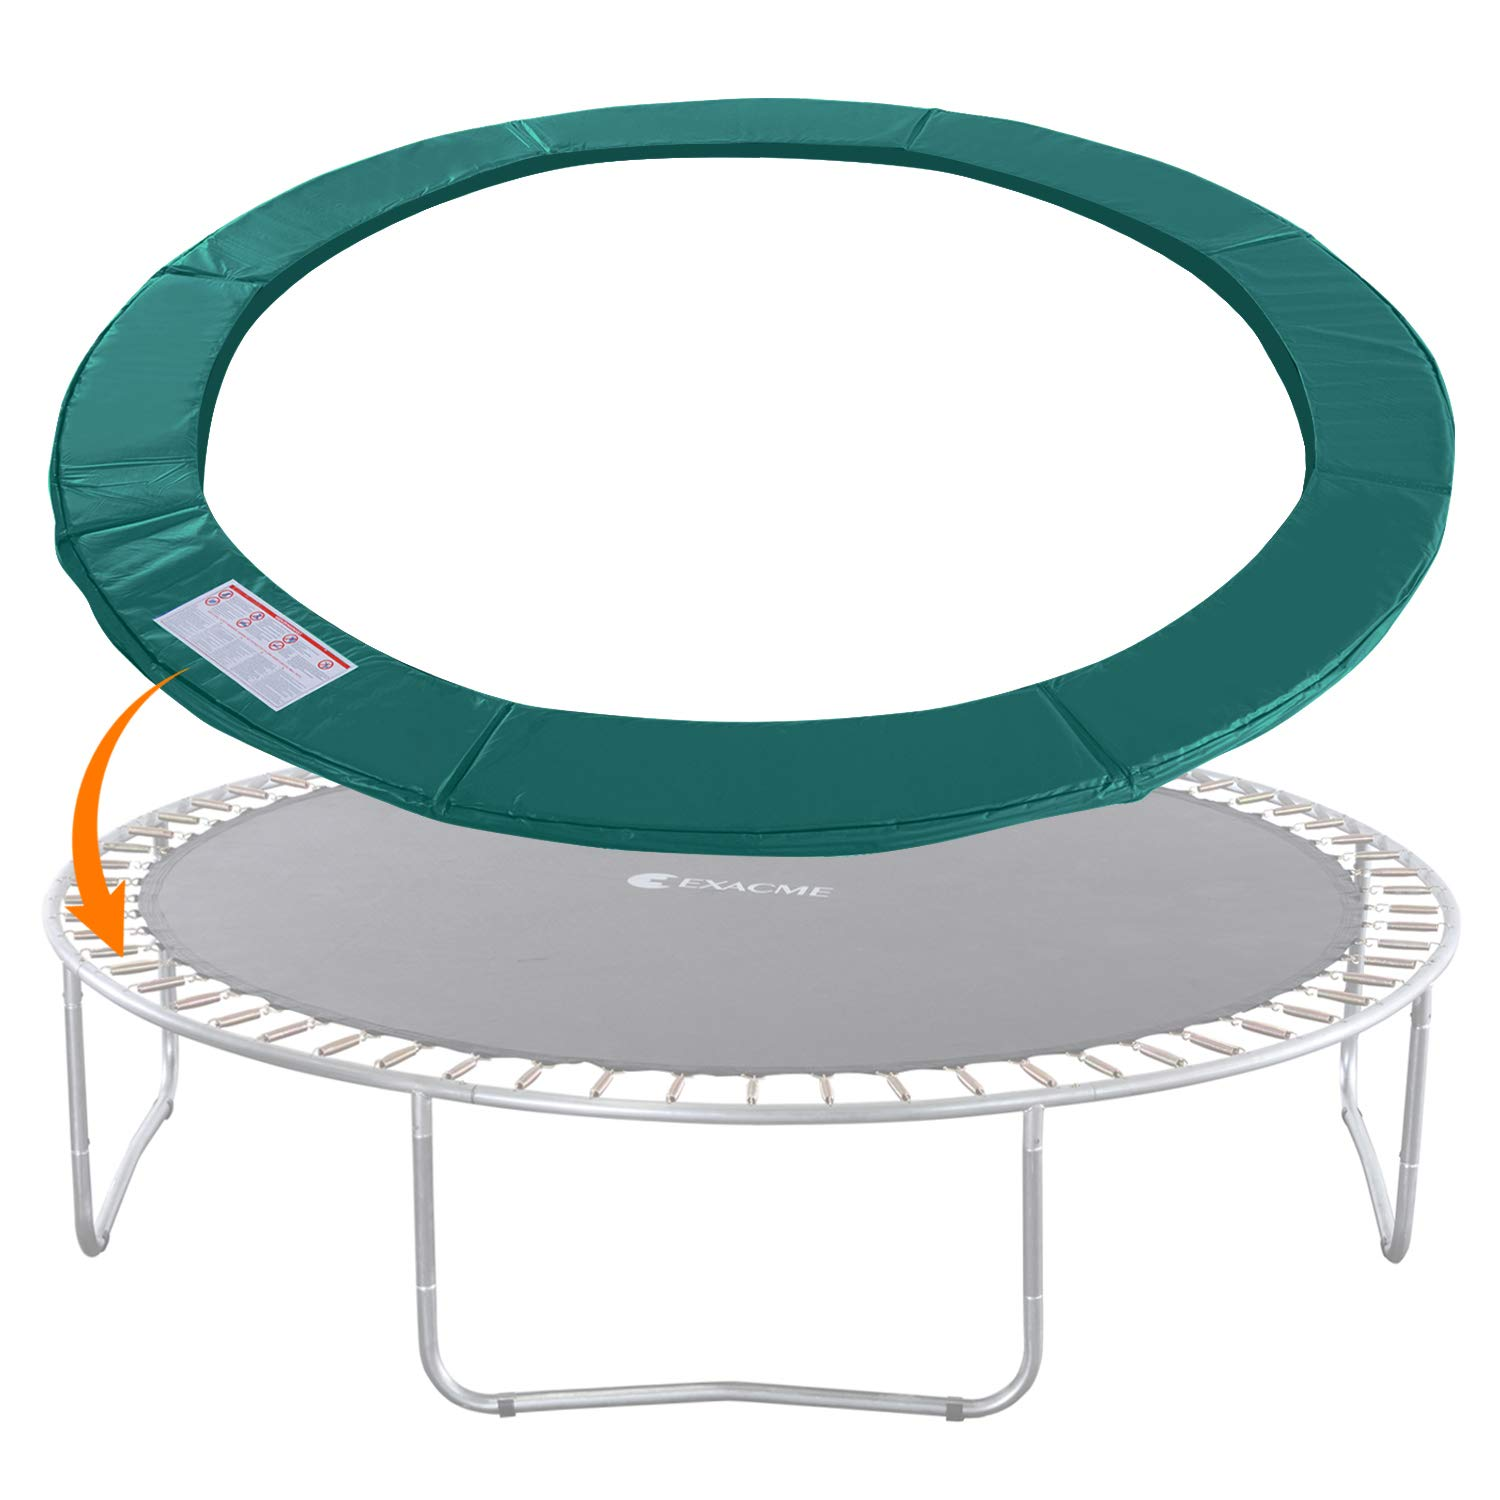 Exacme Trampoline Replacement Safety Pad Round Spring Cover, No Slots (Green, 10 Foot)